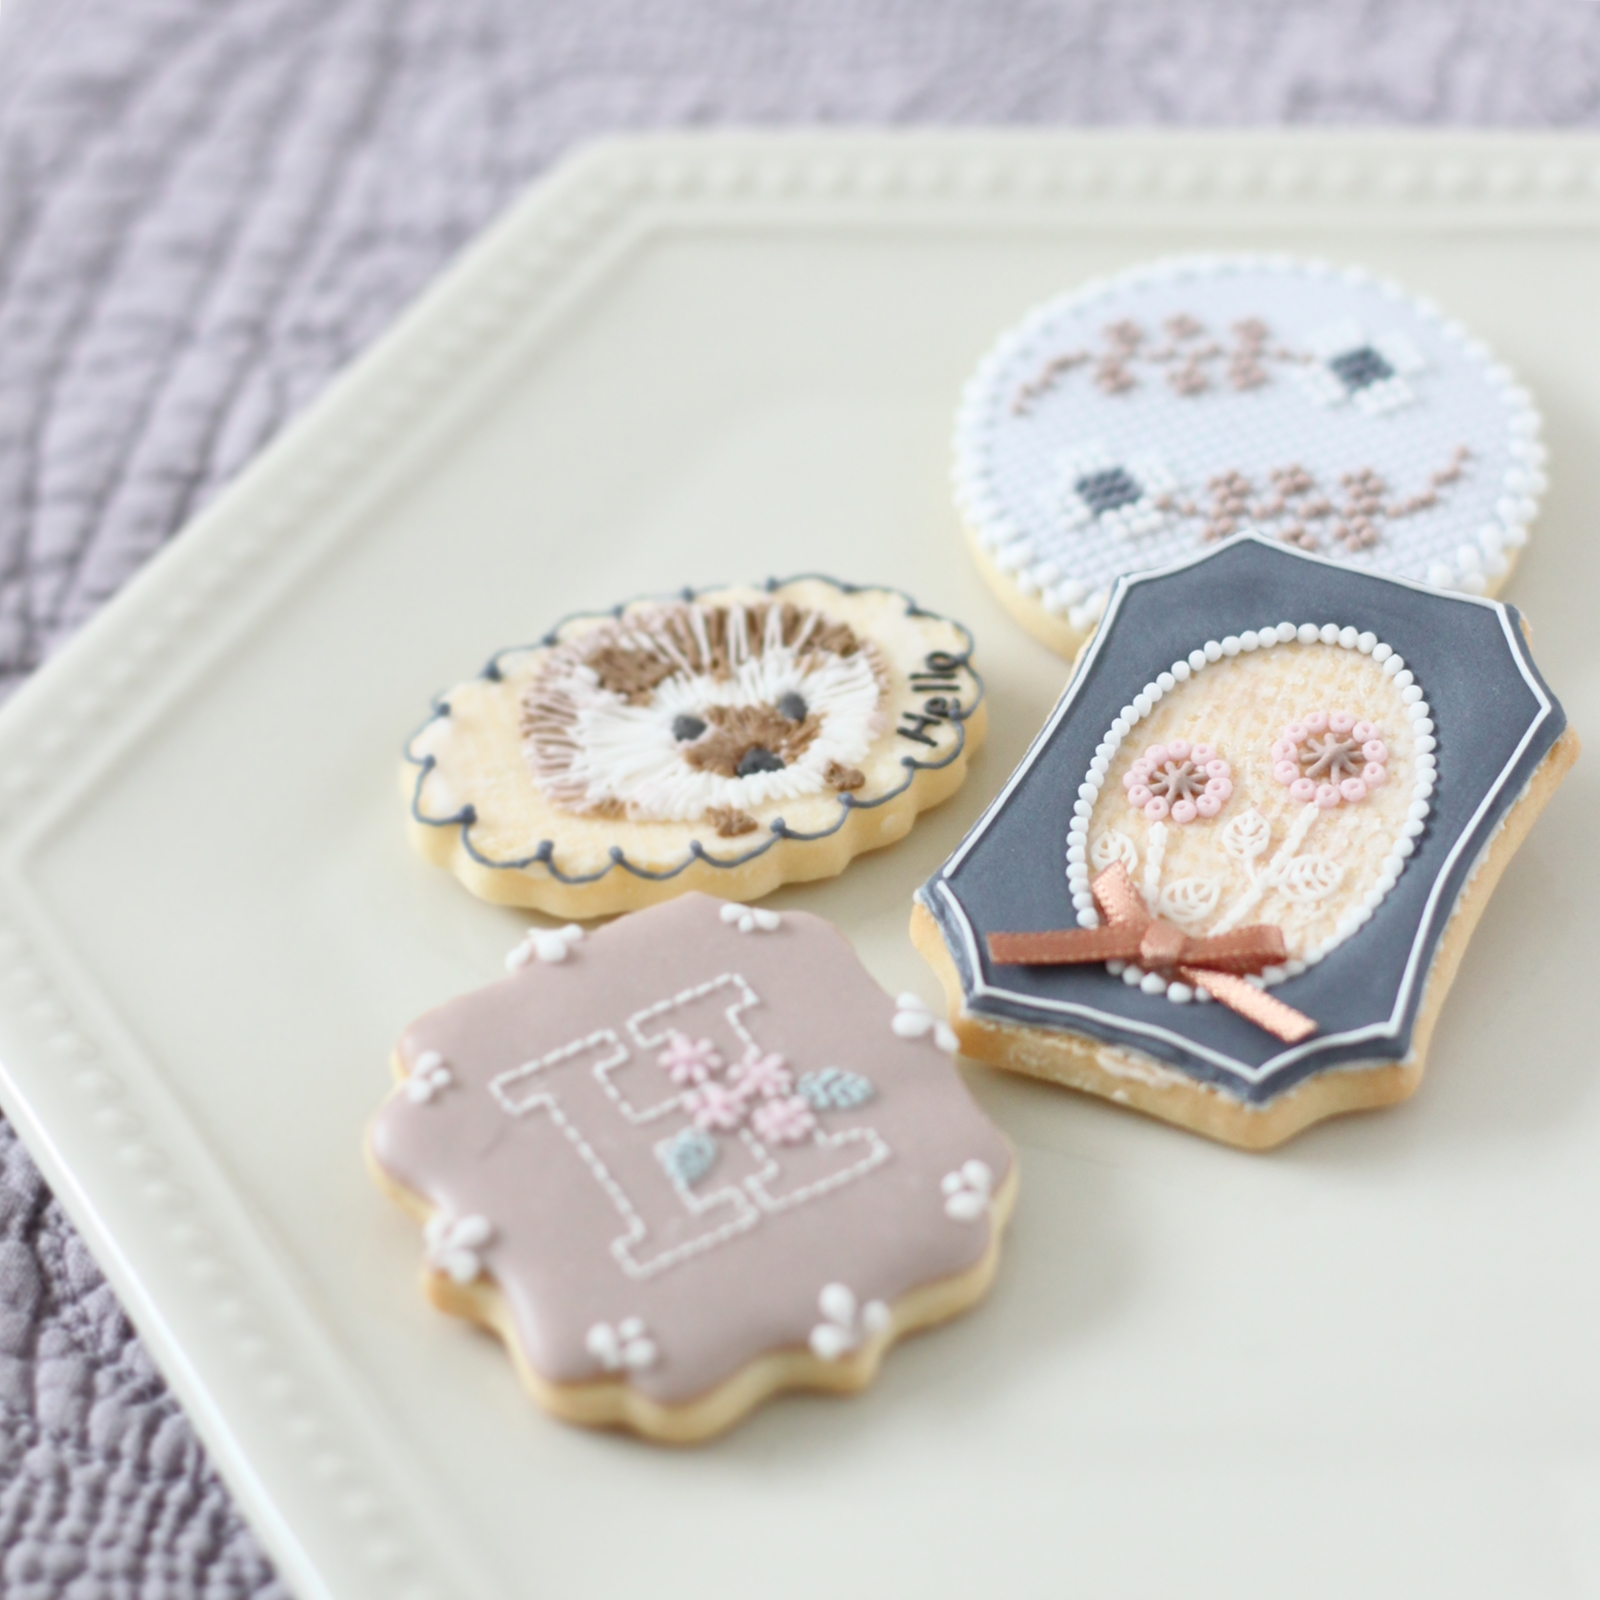 embroidery cookies - 1 day class